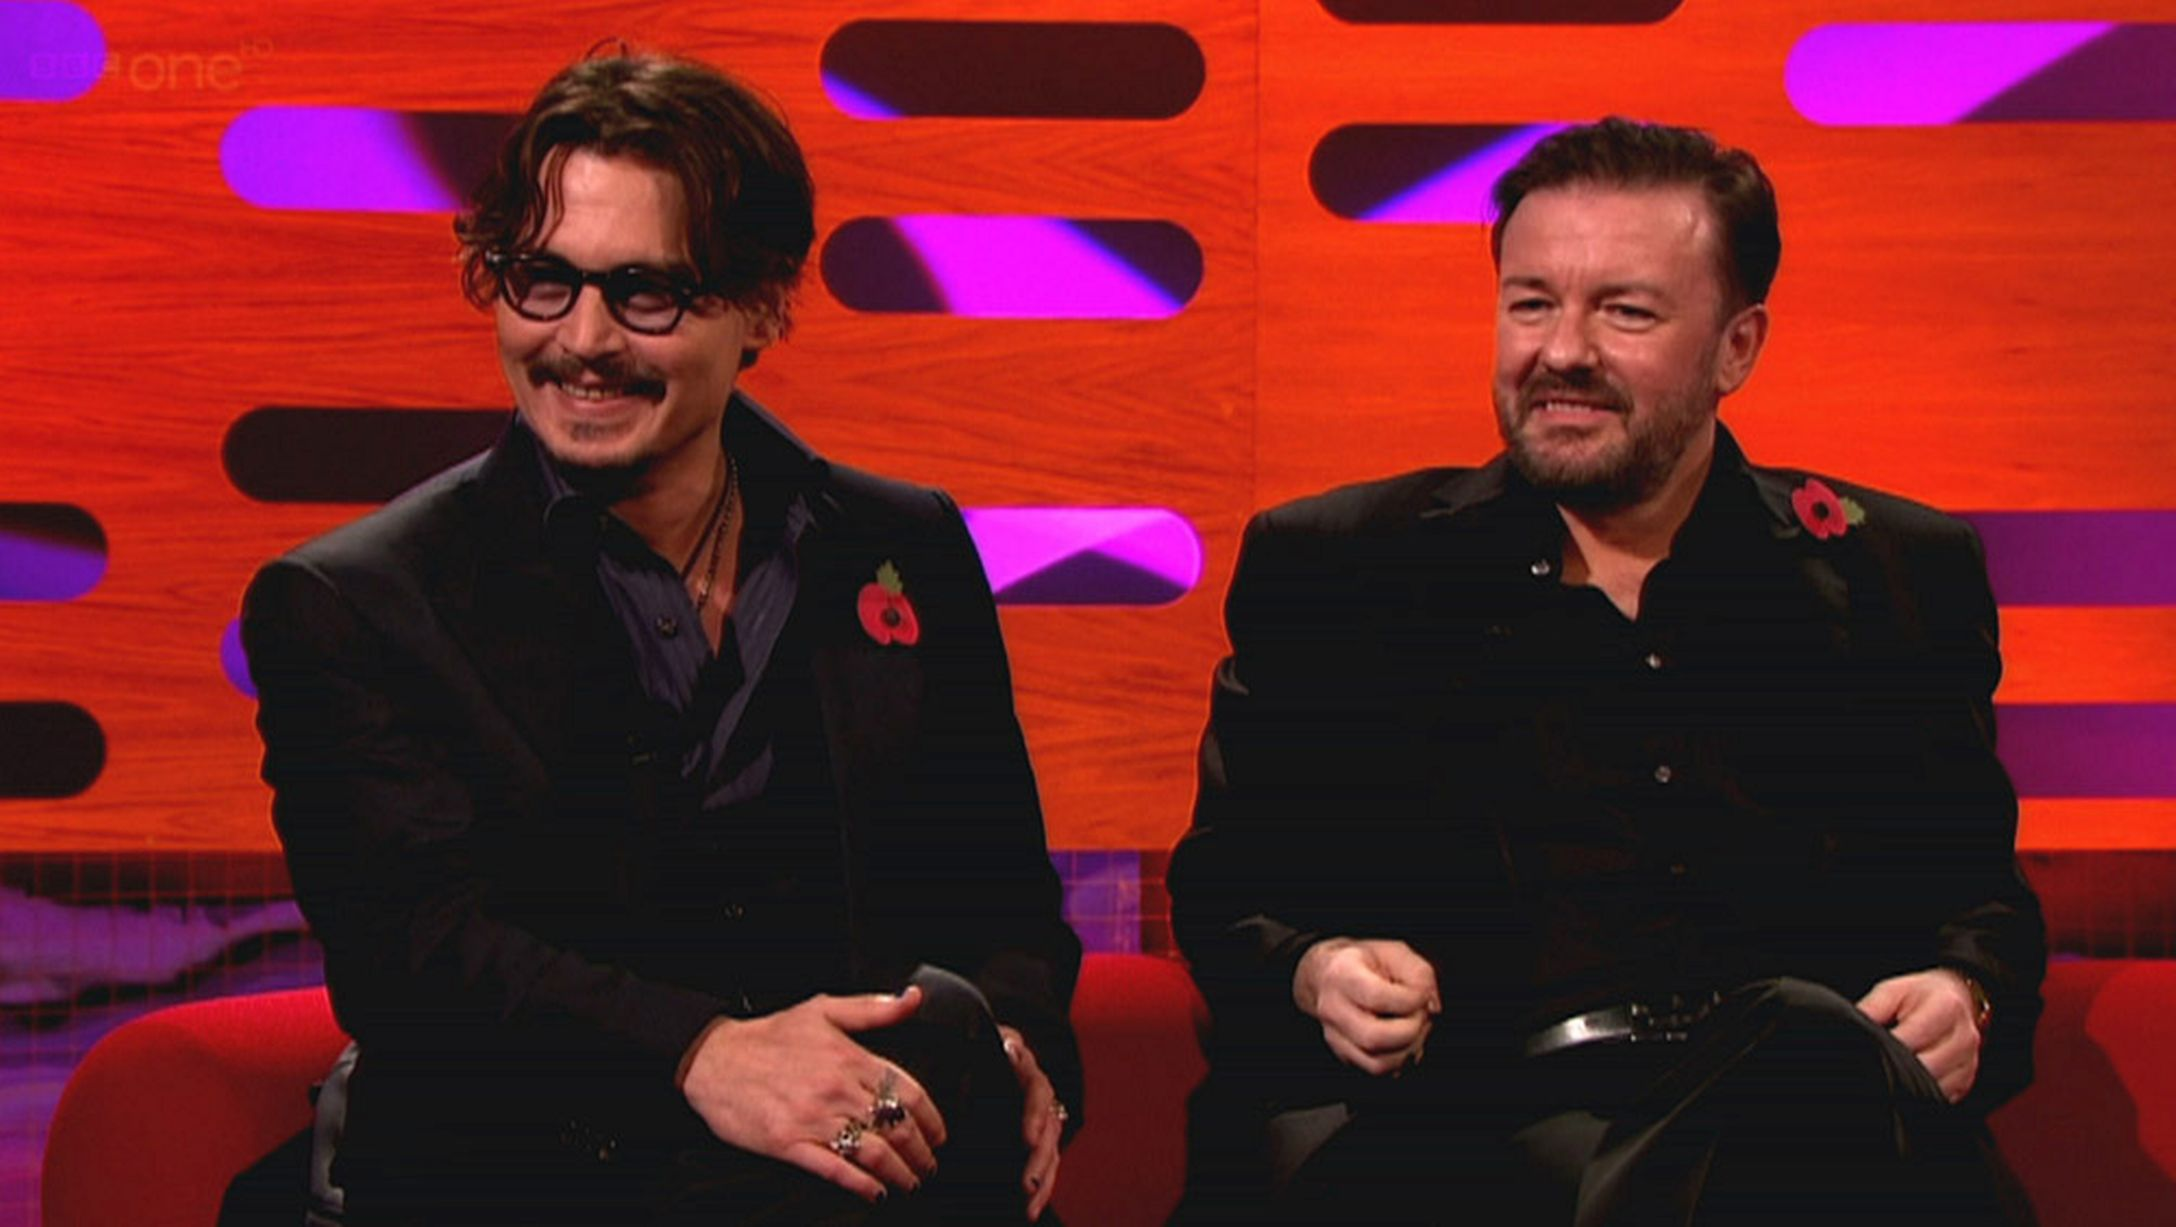 Johnny-Depp-and-Ricky-Gervais-2011